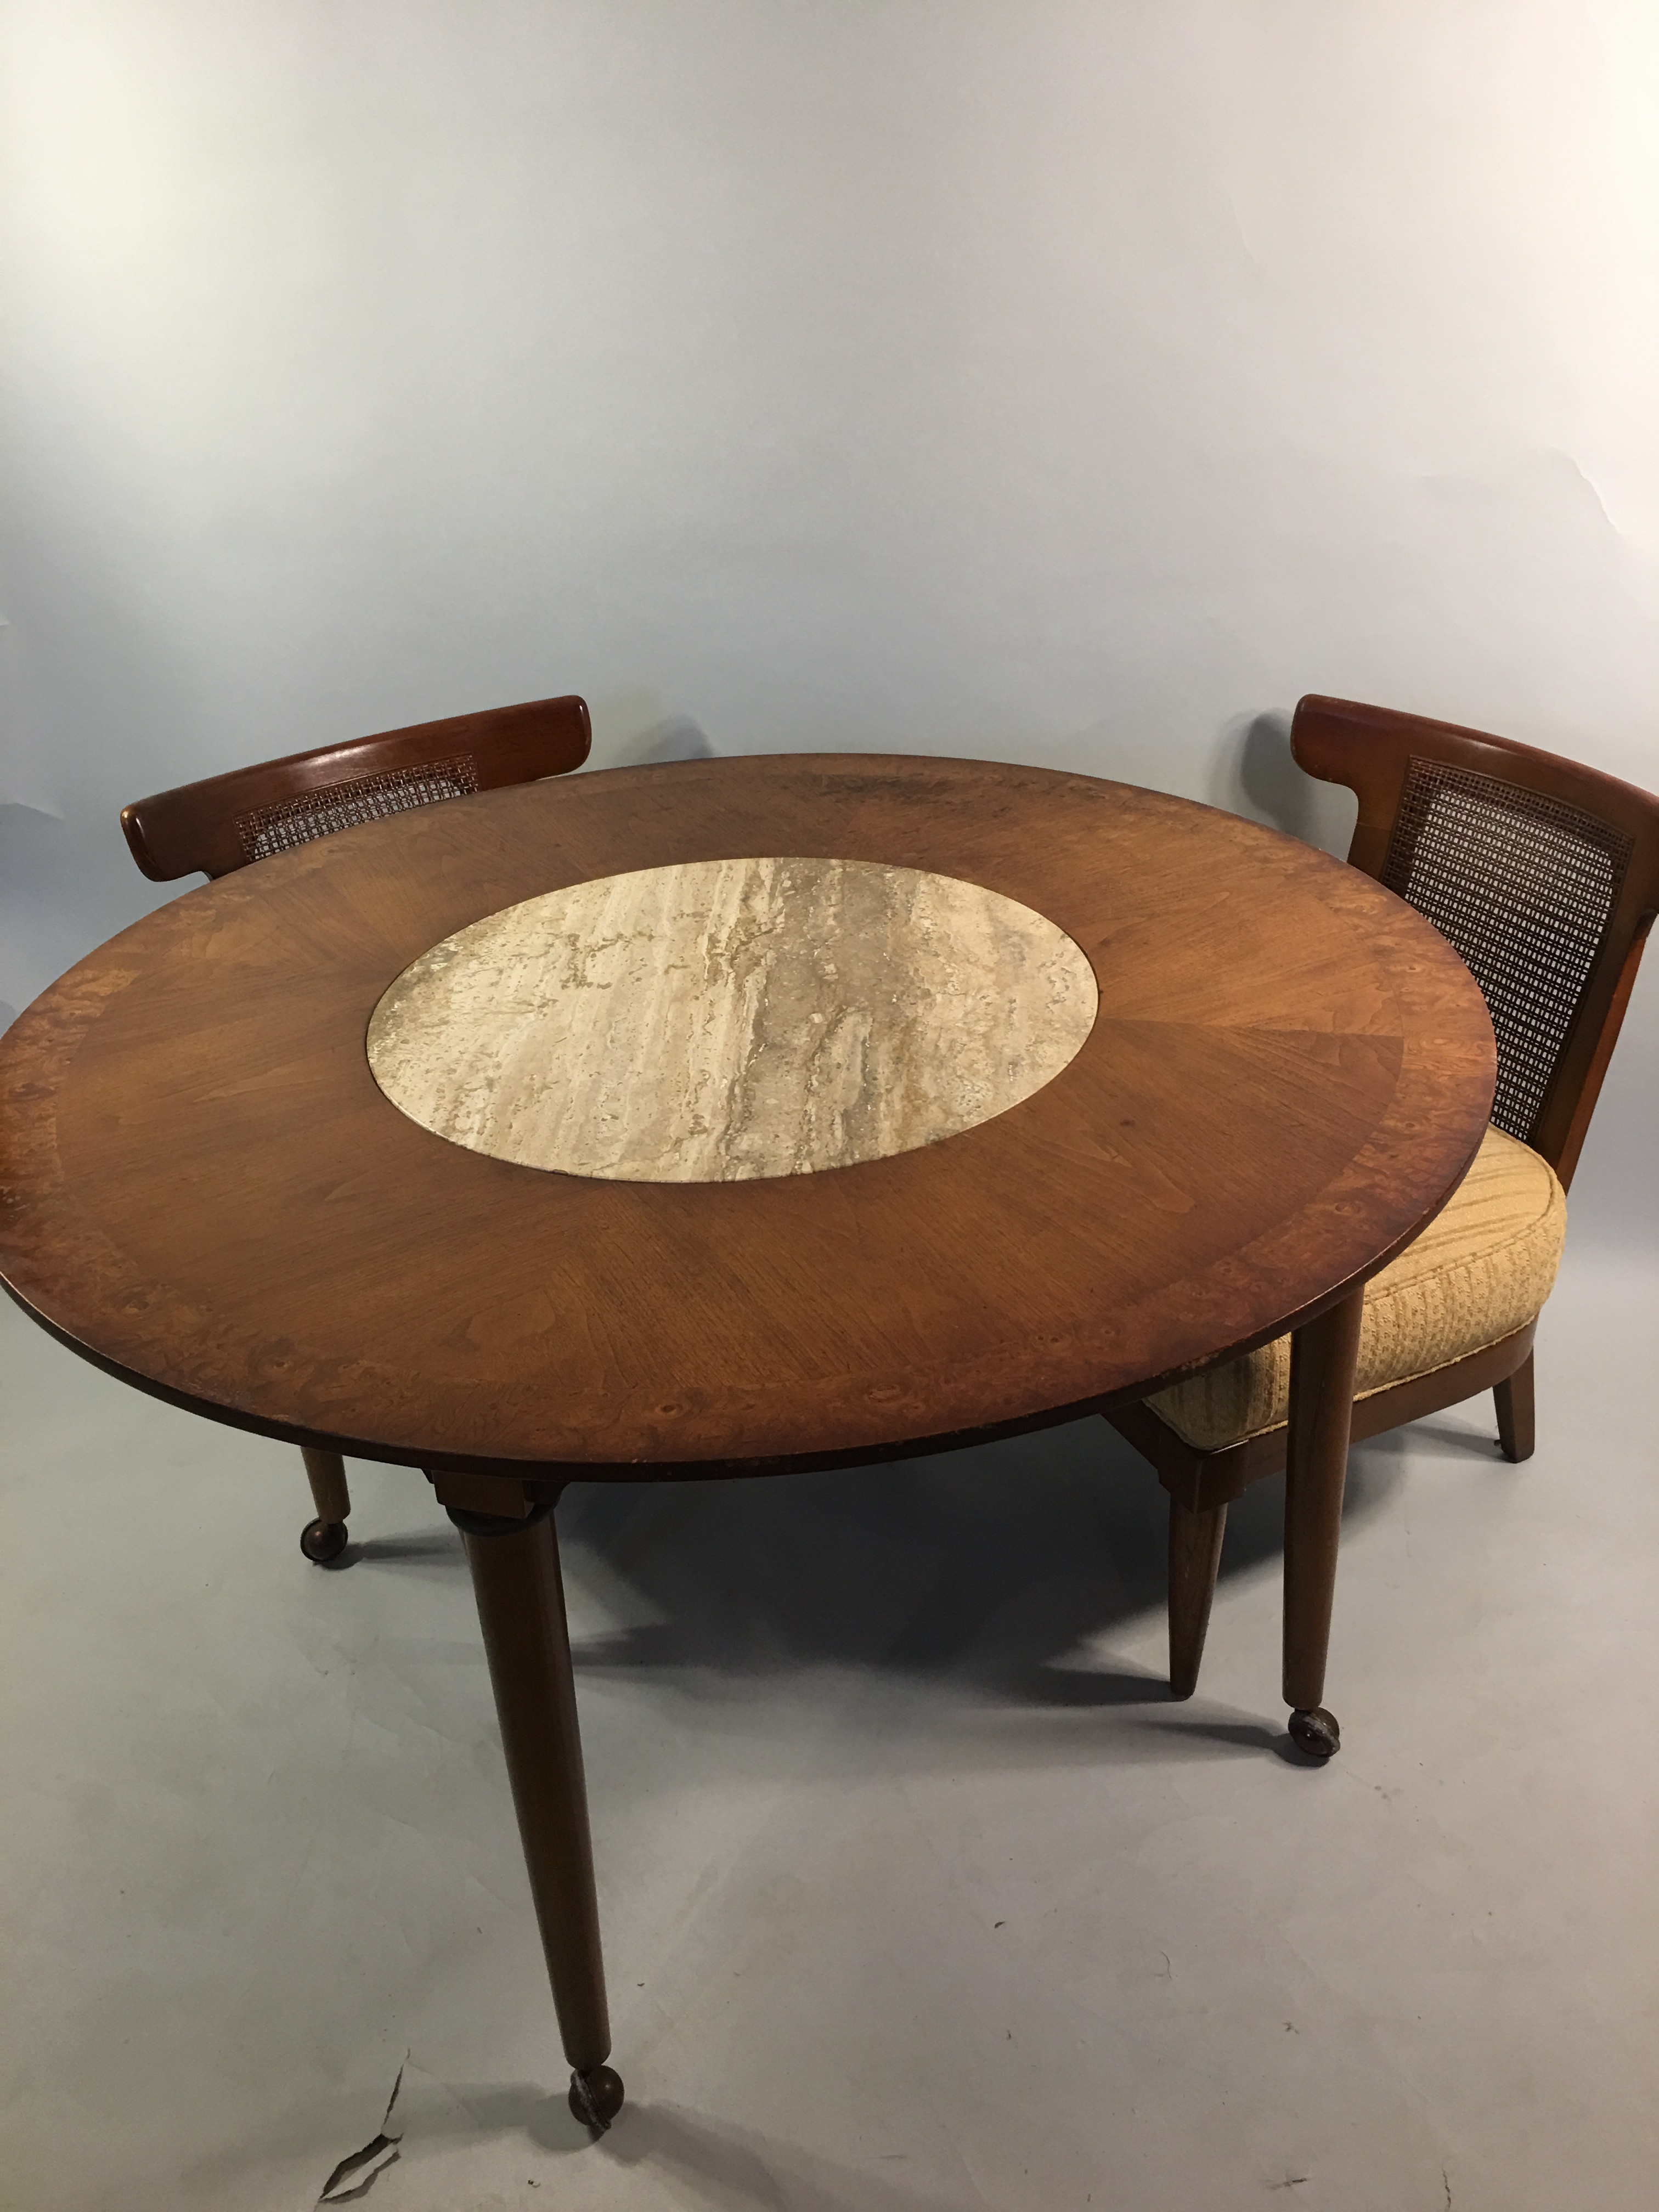 Mid Century Round Marble Insert Dining Table amp Chairs  : 8f9164e6 b1de 47c5 ac18 3aa0b4a6c0bfaspectfitampwidth640ampheight640 from www.chairish.com size 640 x 640 jpeg 29kB